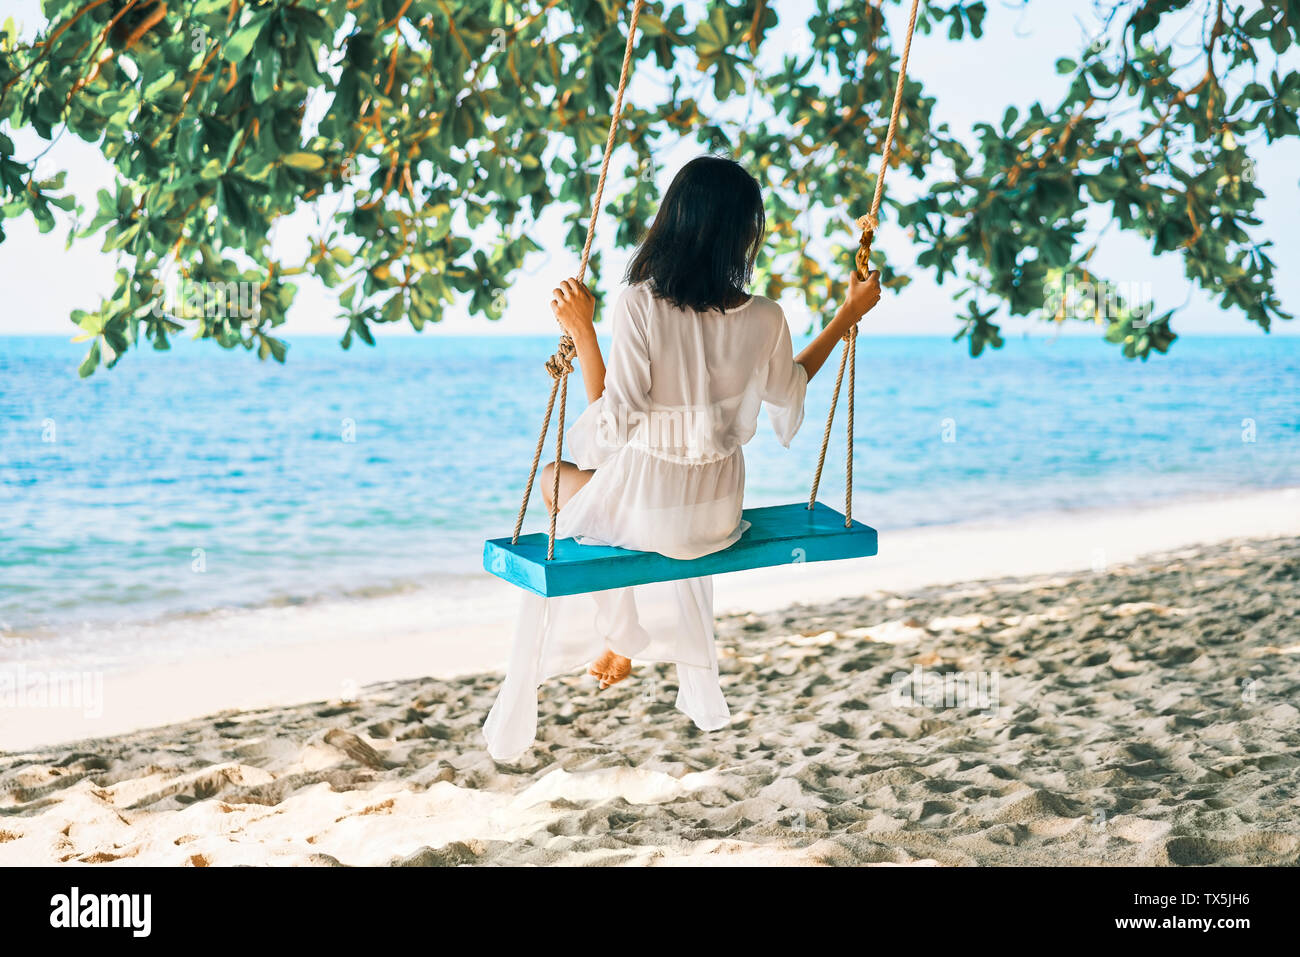 Carefree happy woman on swing on beautiful paradises beach. Relax and freedom concept - Stock Image